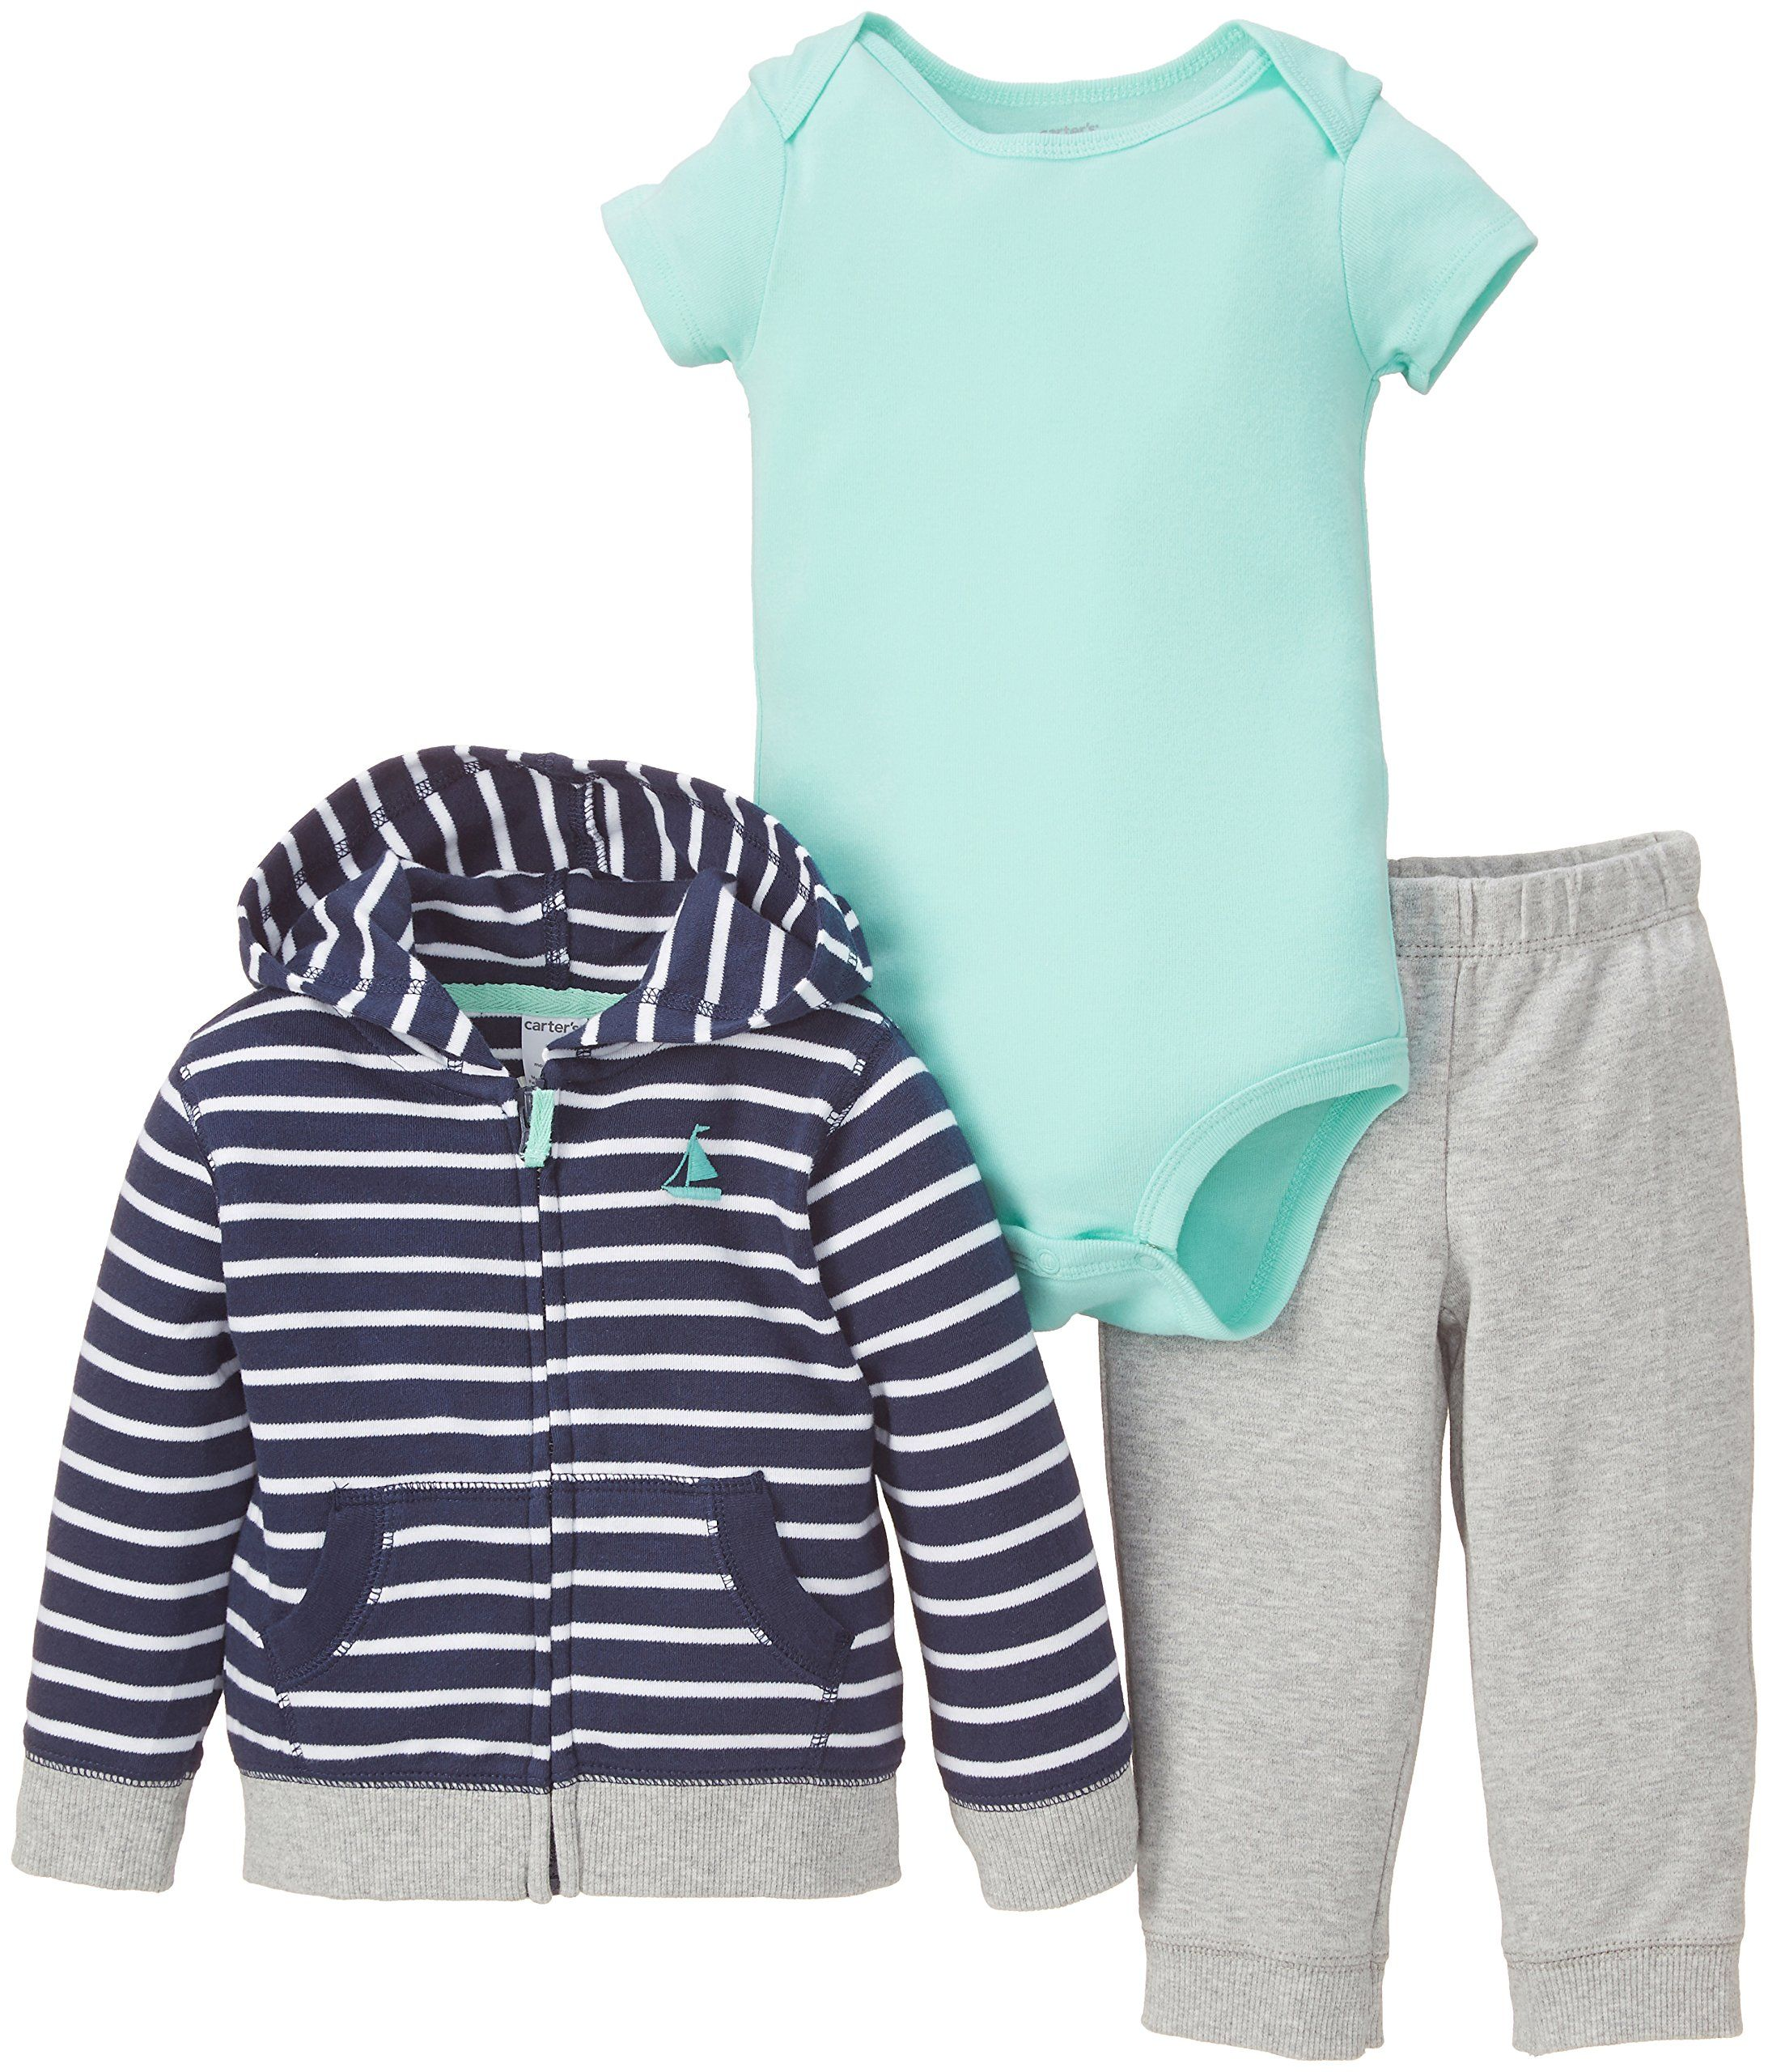 Amazon.com: Carter's Baby Boys' 3 Piece Striped Hoodie Set (Baby) - Navy: Clothing